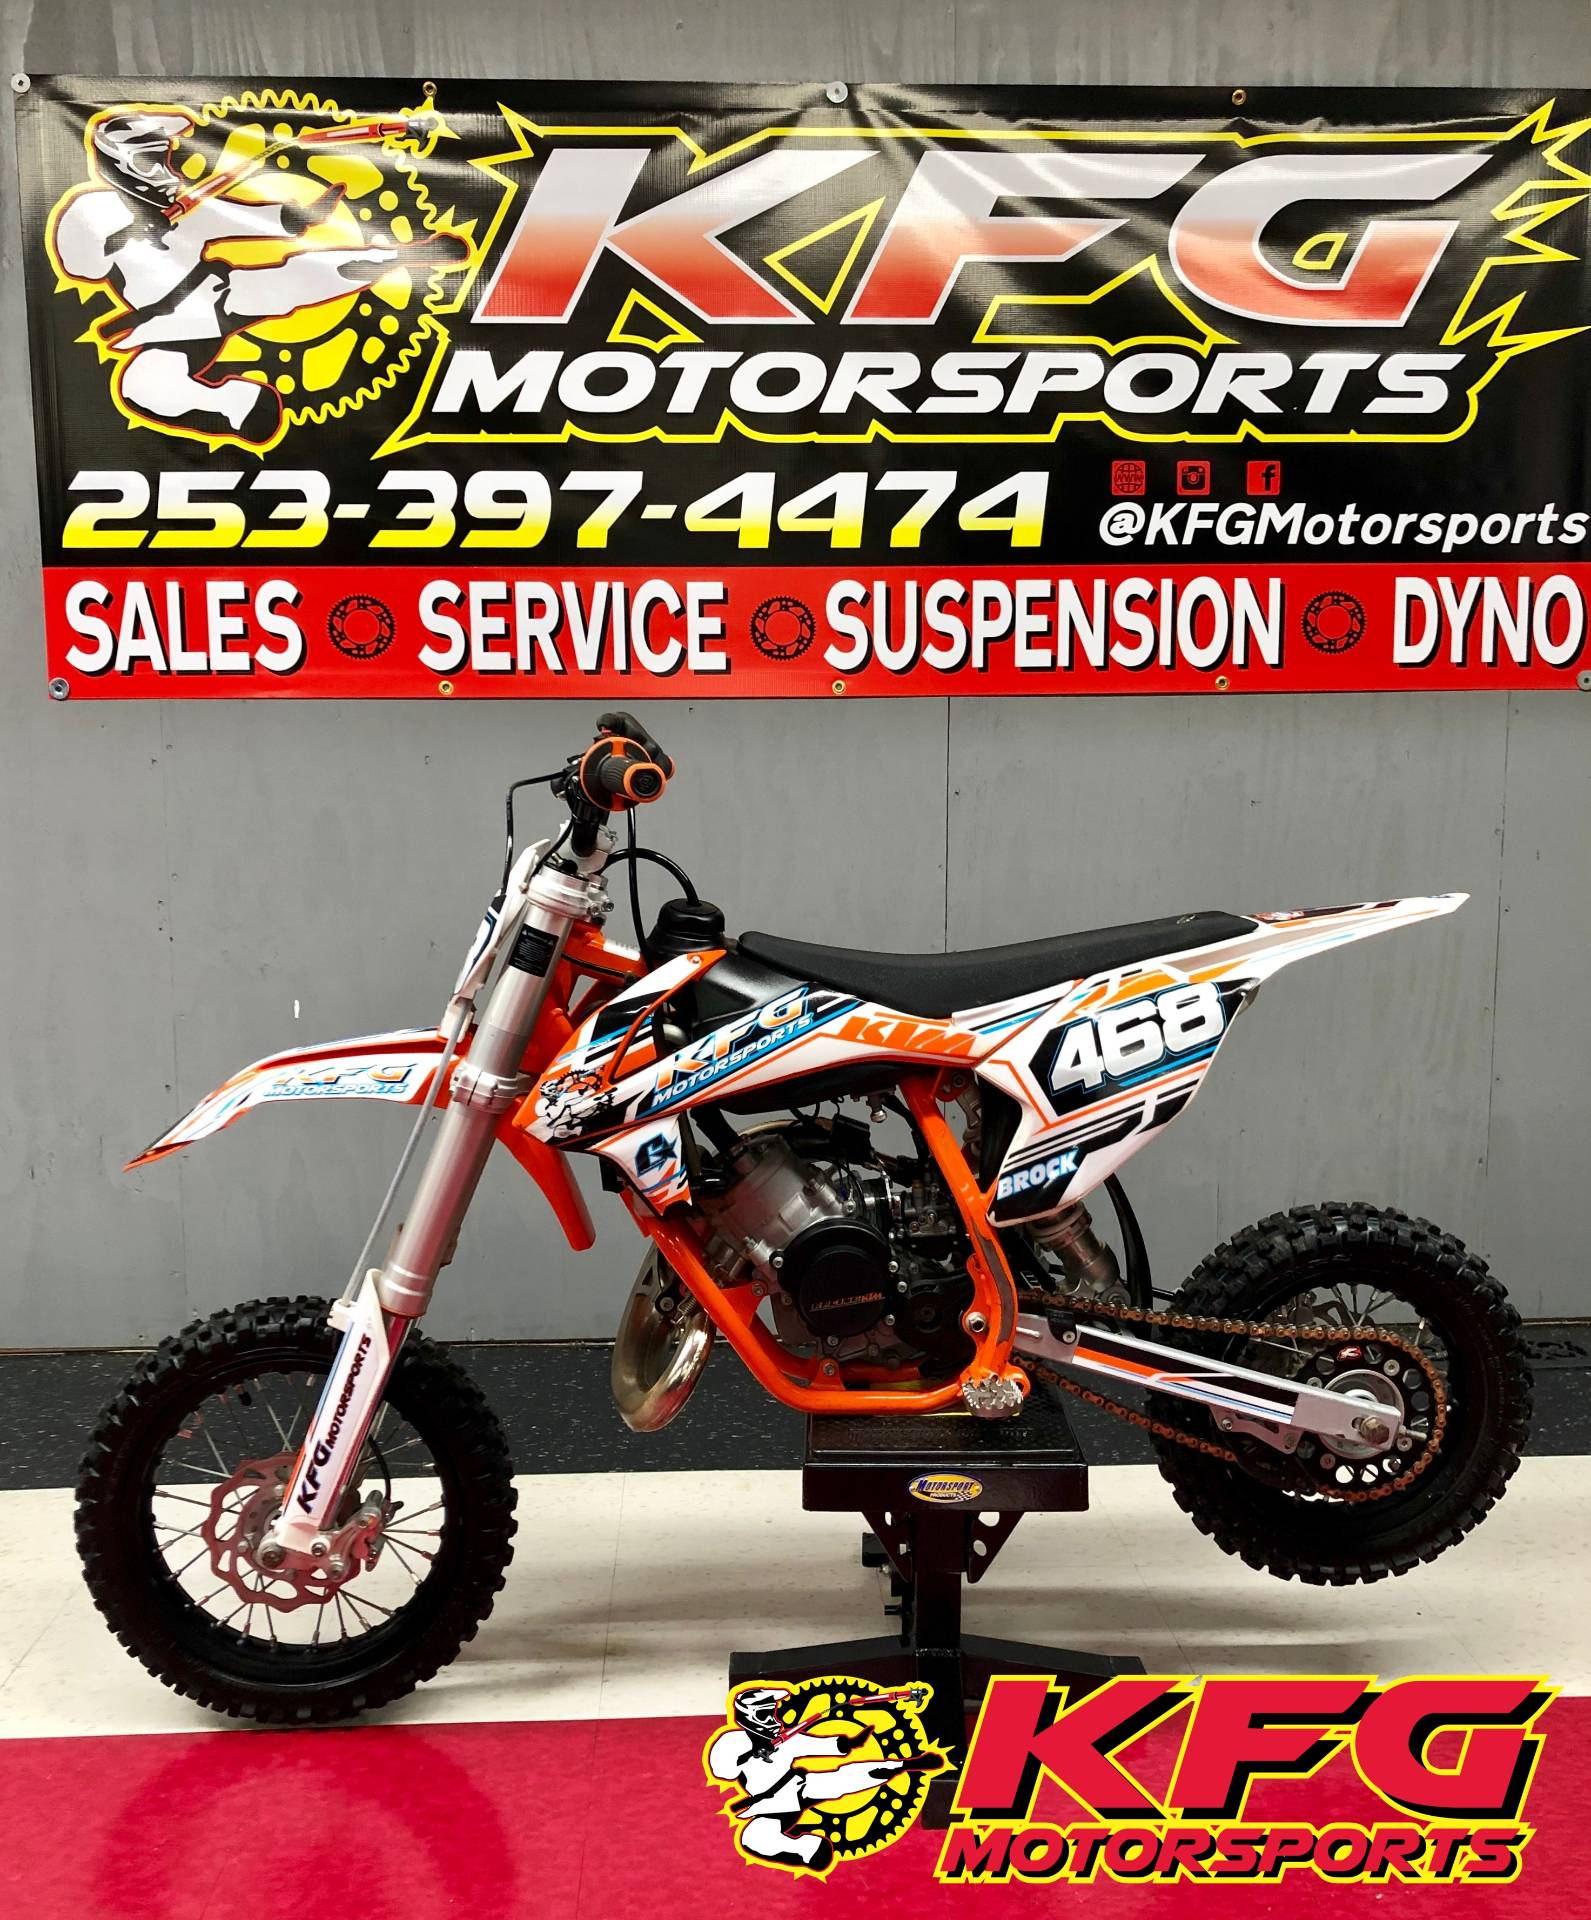 Used 2018 KTM 50 SX Motorcycles in Auburn, WA | Stock Number